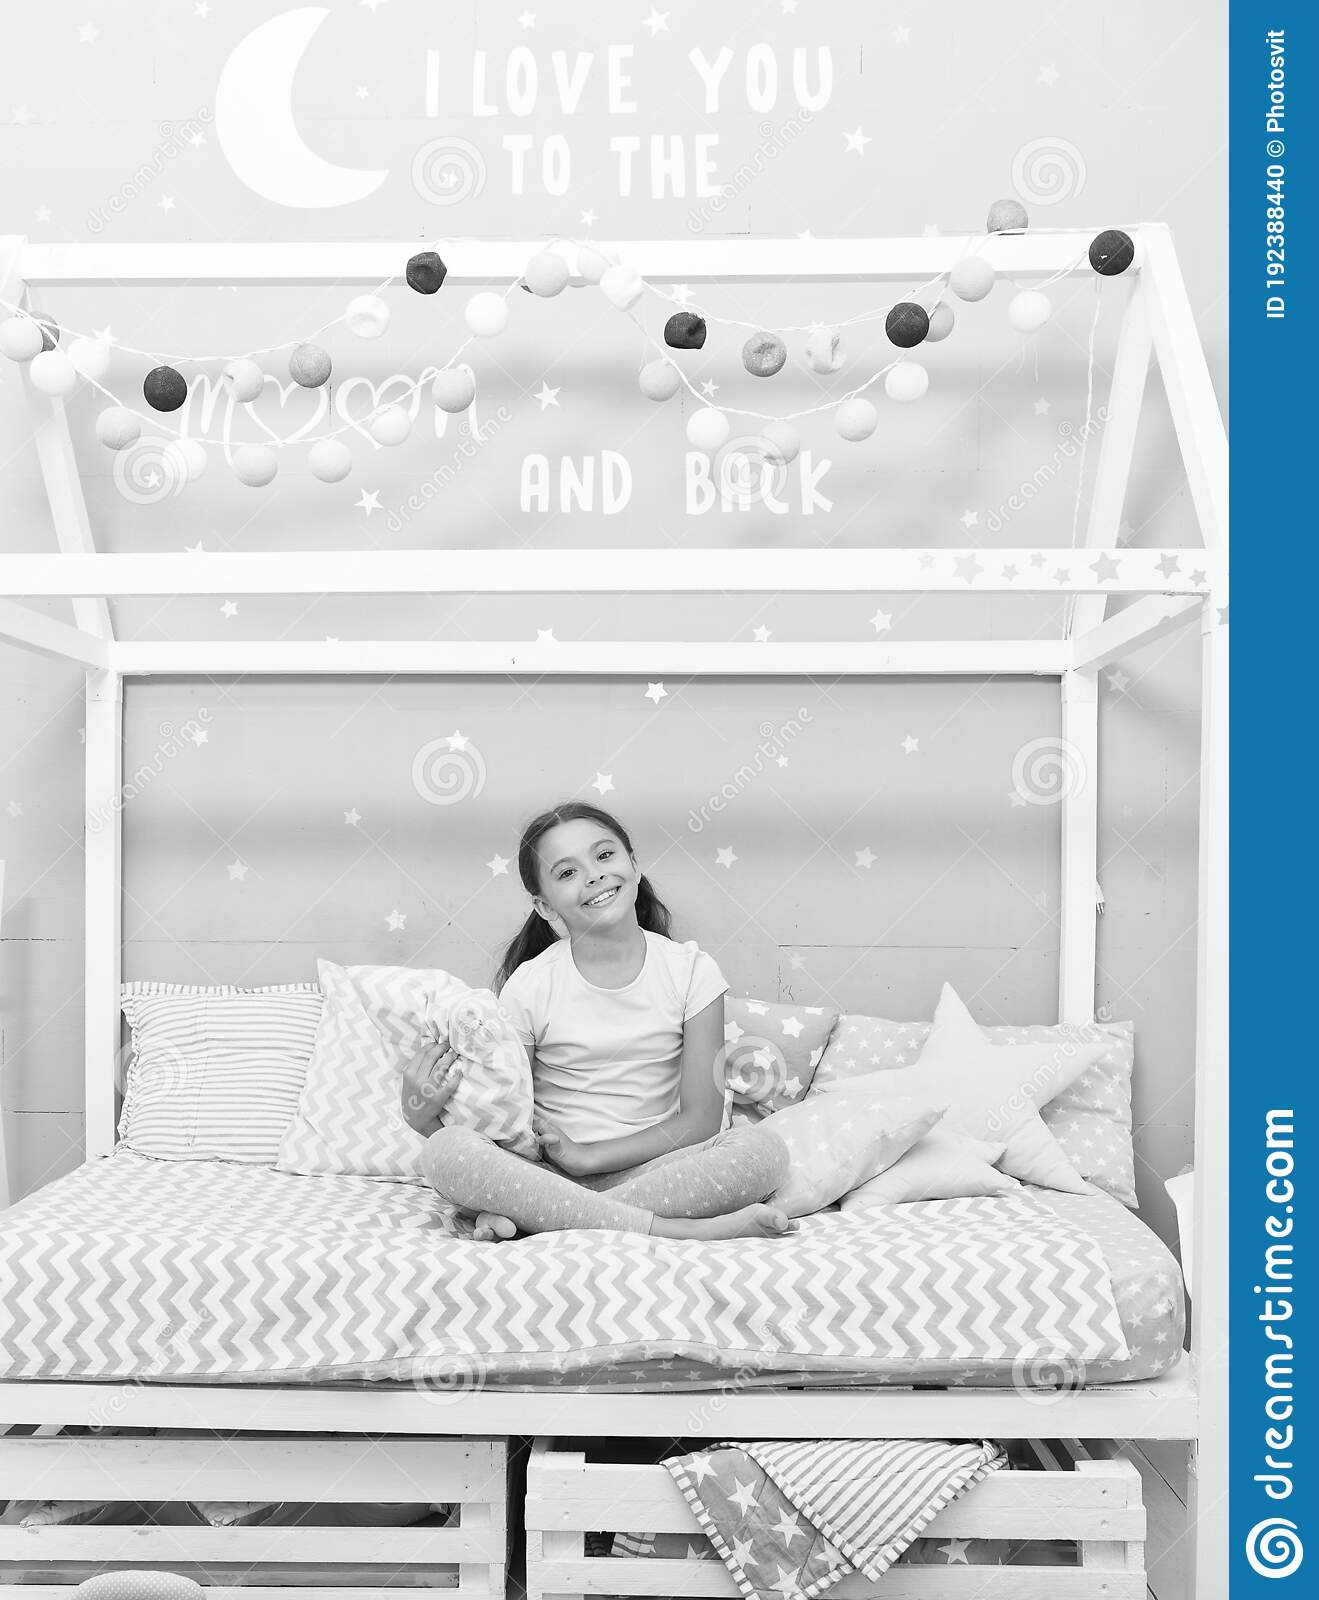 Good Morning Sweet Dreams Fashion Pajamas My Bedroom My Rules Cute Cozy Bedroom For Small Girl Girl Relaxing Stock Photo Image Of Happiness Good 192388440